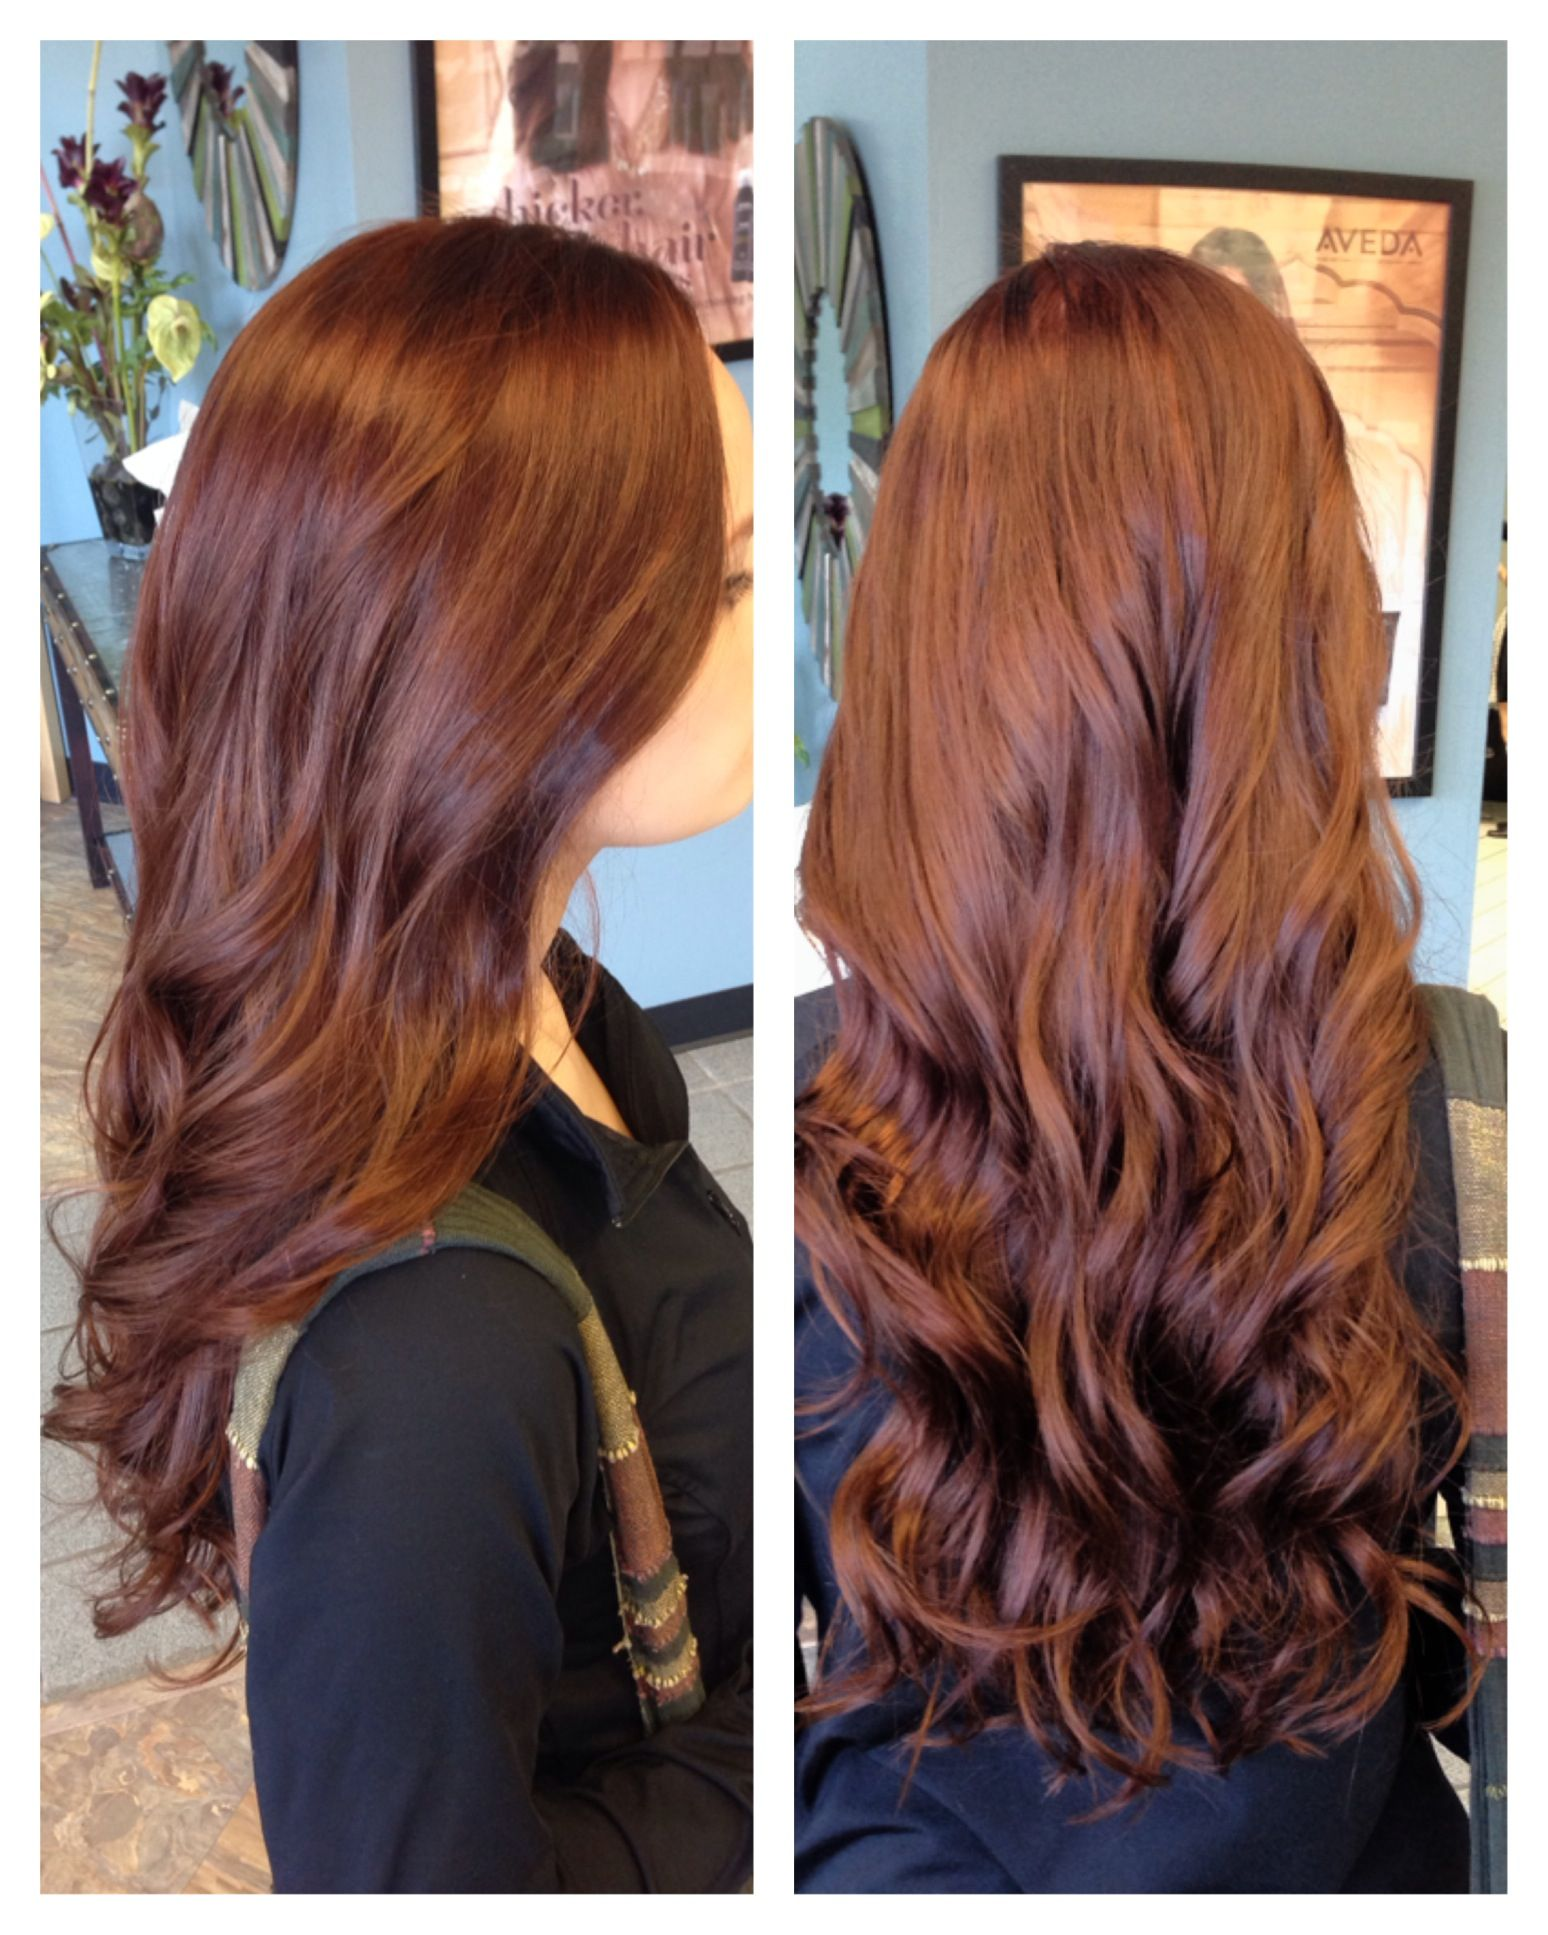 Brown red, auburn, hair color with soft curls | Hair in ...